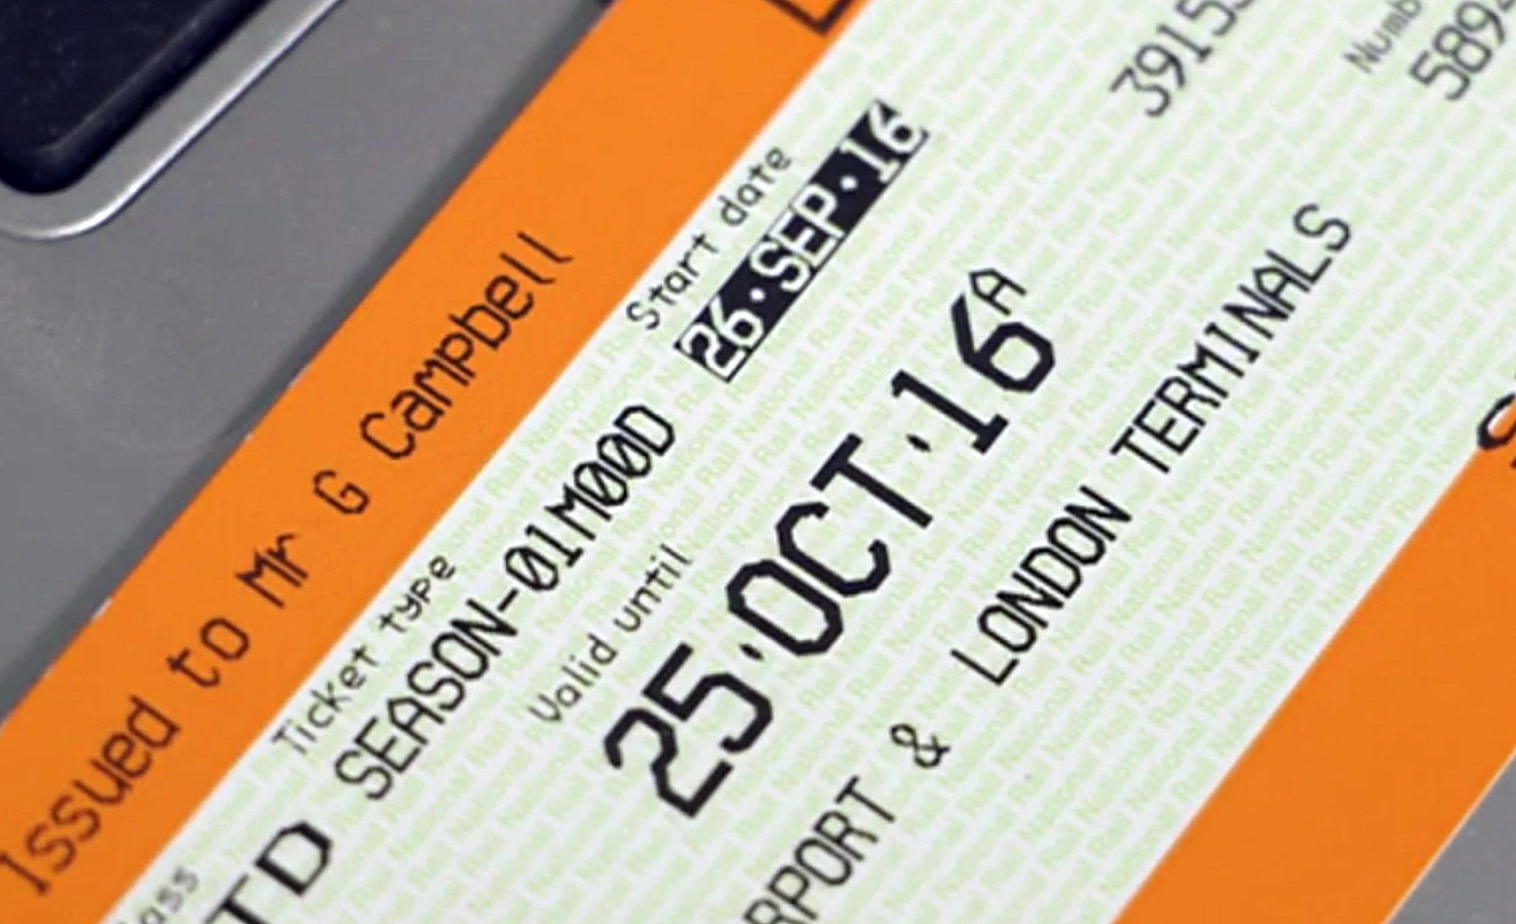 Train Tickets Find cheapest train tickets Ticket Types Advance Tickets Check out the latest ticket offers and discounts available for your next journey with South Western Railway, including savings on Advance Purchase tickets, 2FOR1 London, Groupsave and more!